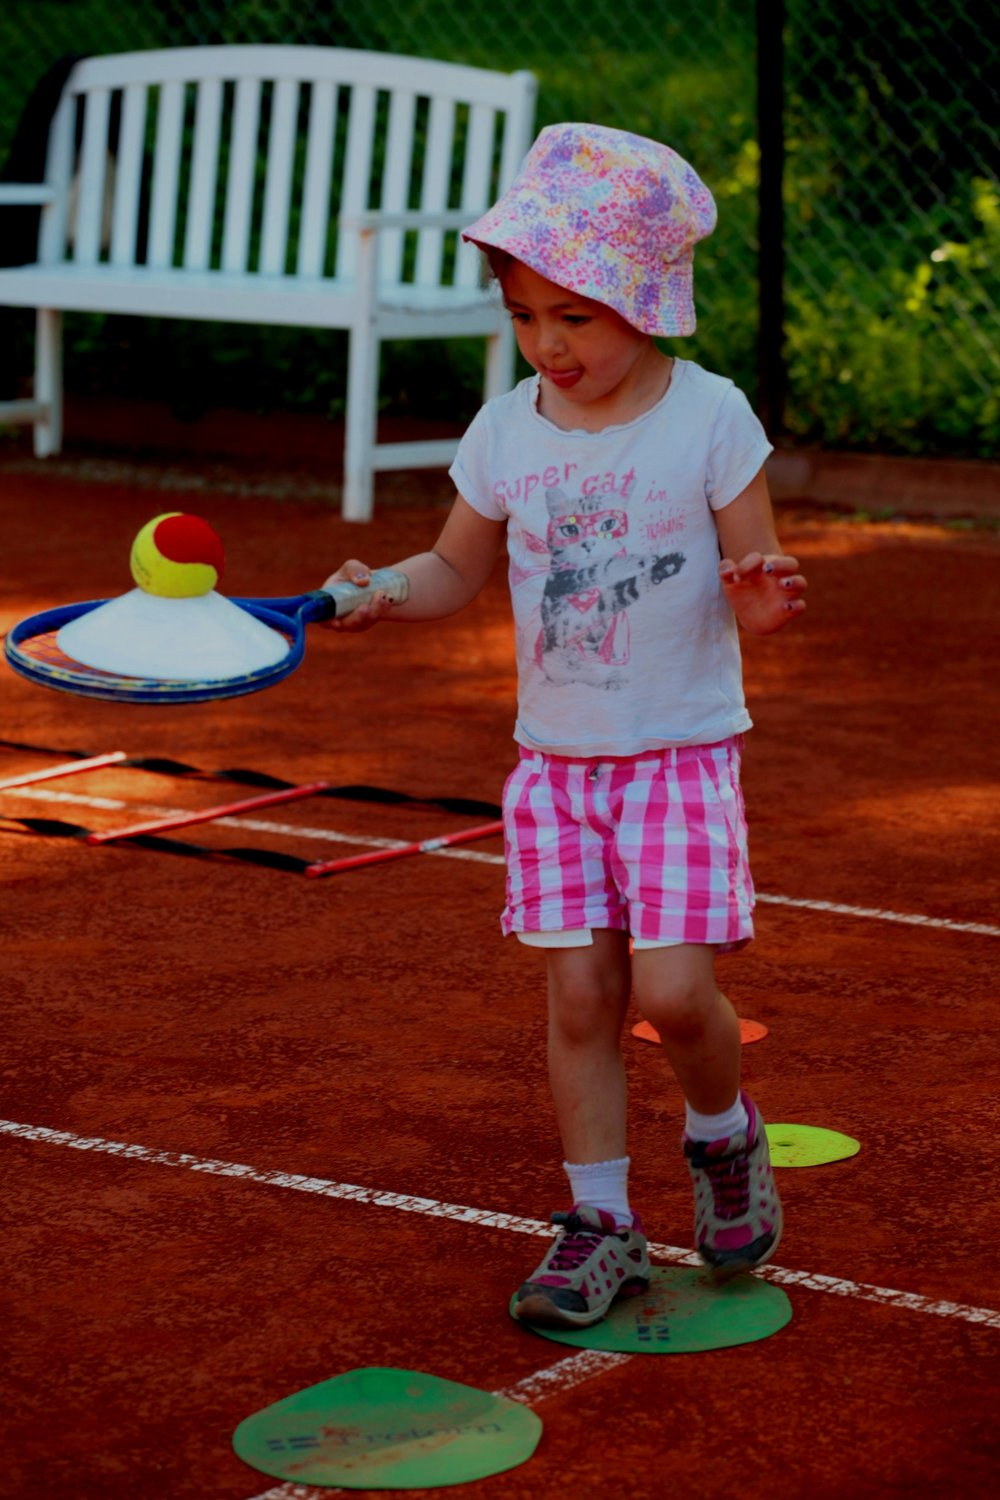 TENNIS FOR BARN -